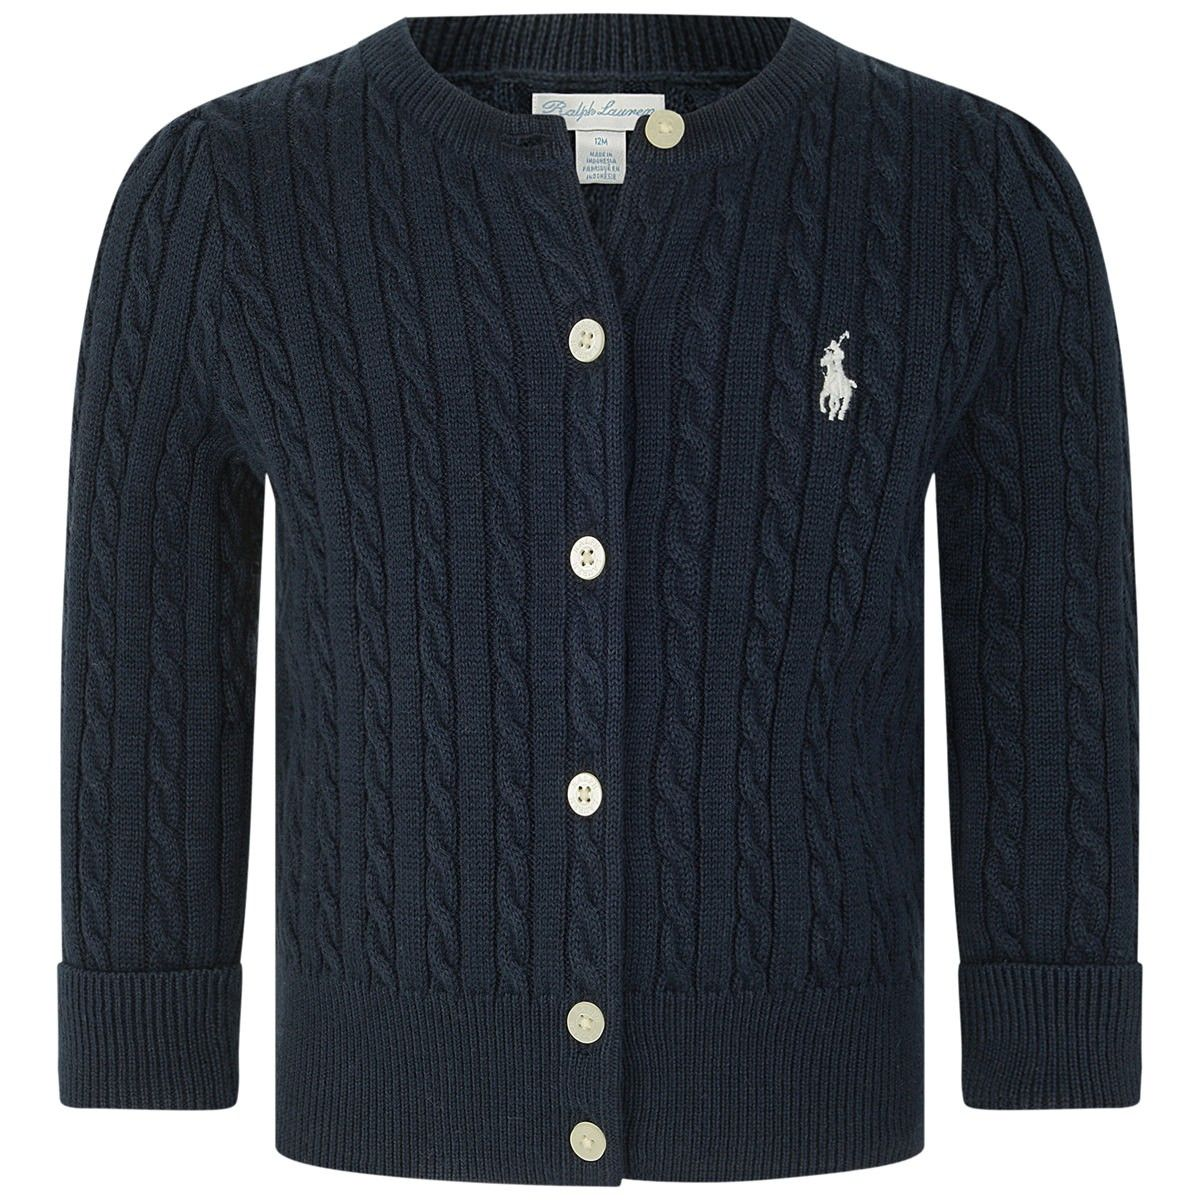 Ralph Lauren adorable baby girls cardigan in a navy hue features a cable knit design, ribbed neckline, cuffs and hemline and embossed buttons and RL Pony logo in white to the front. Navy hue Cable Knit design Ribbed neck |cuffs| hemline RL Pony Logo to the front 100% Cotton Machine wash at 30°